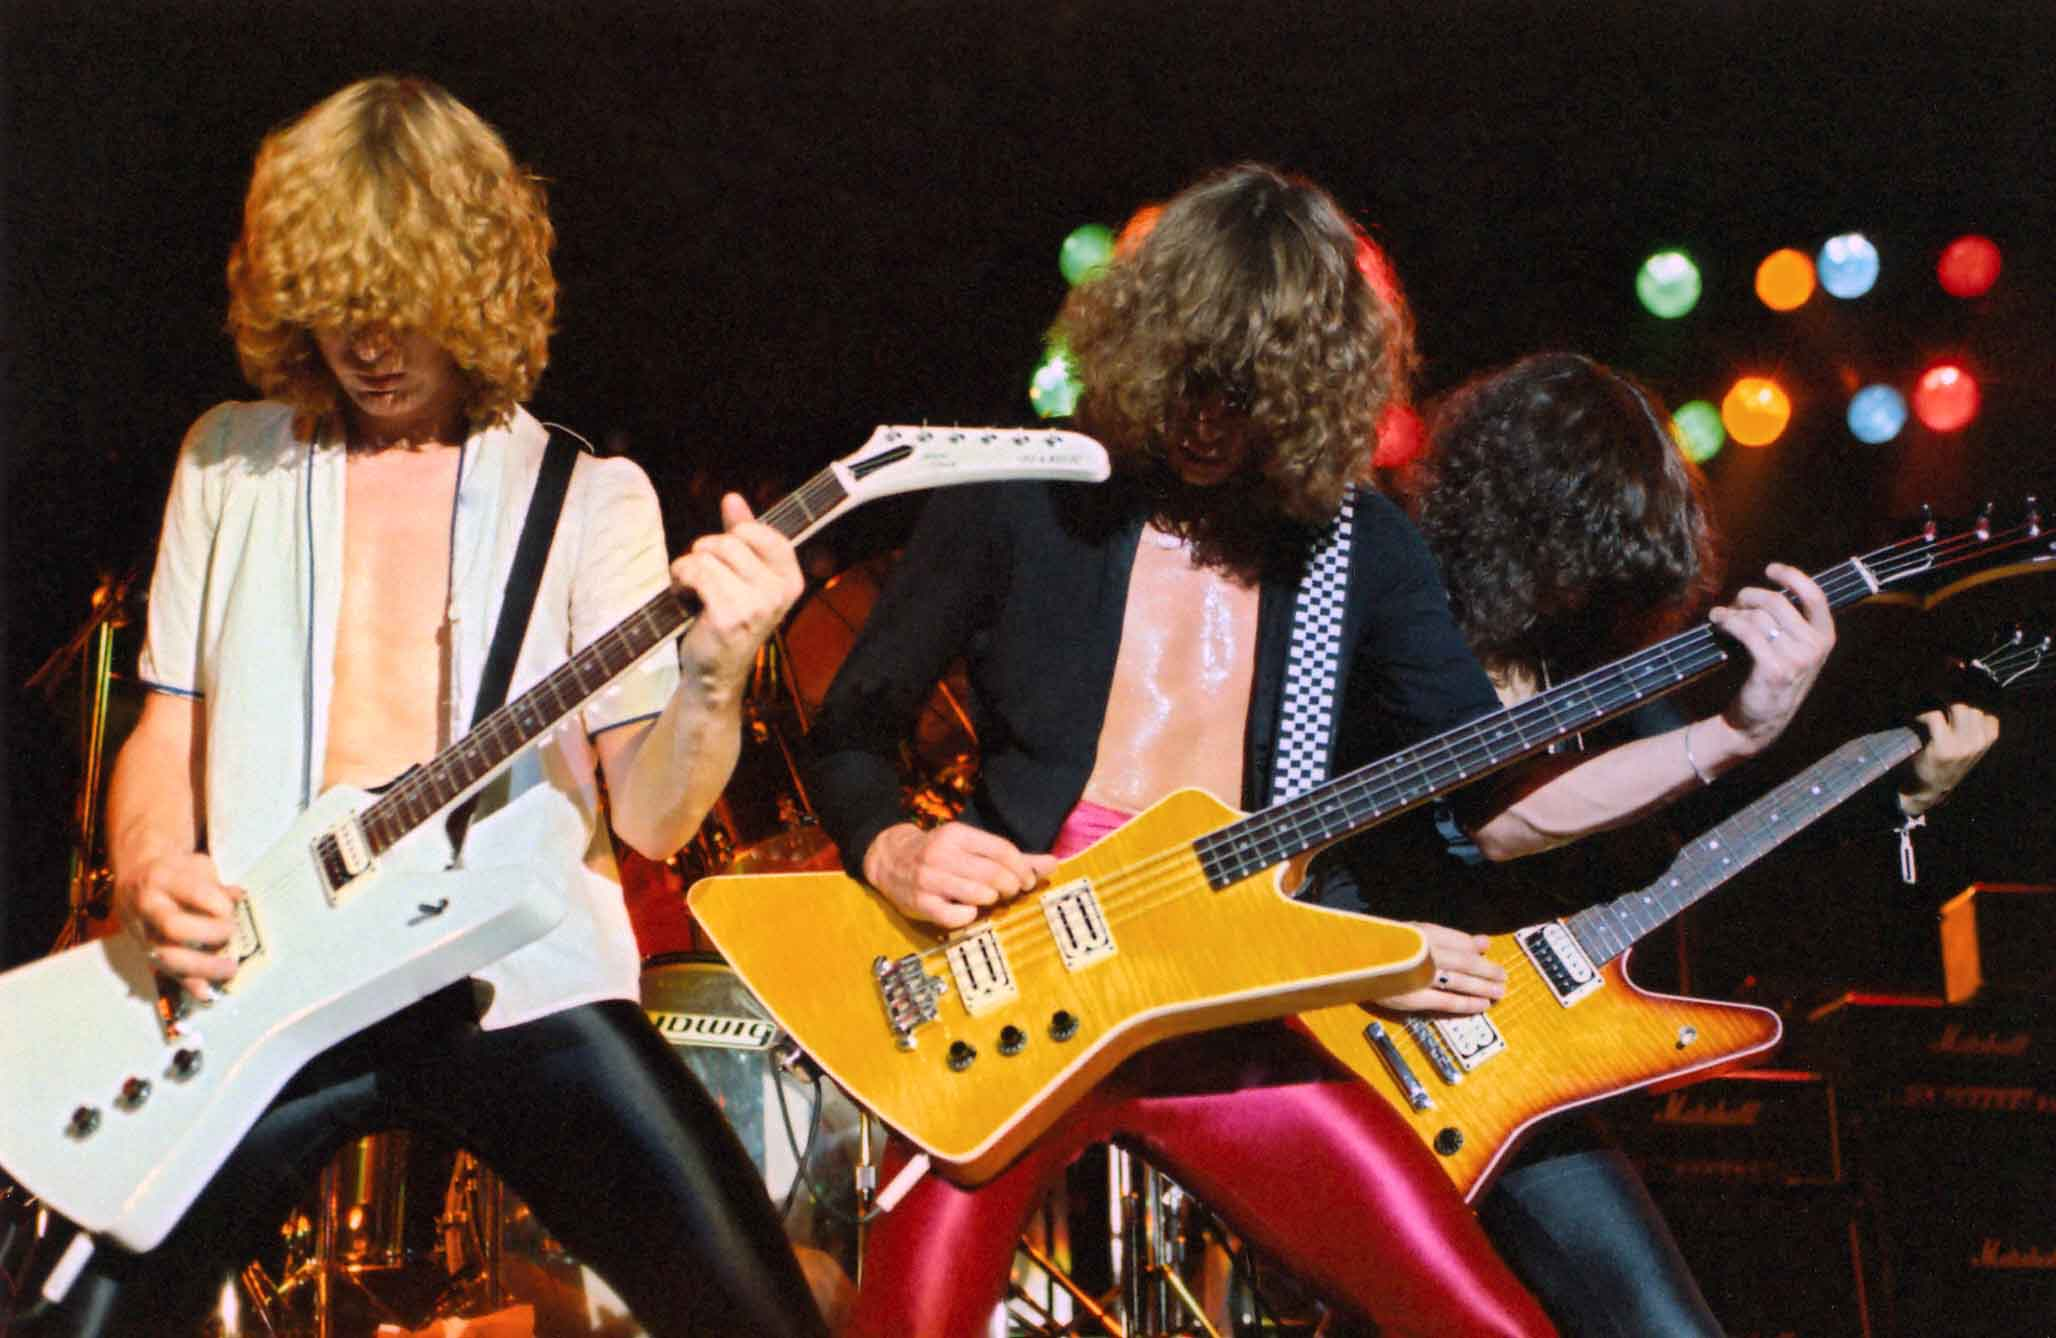 Def Leppard performance photo